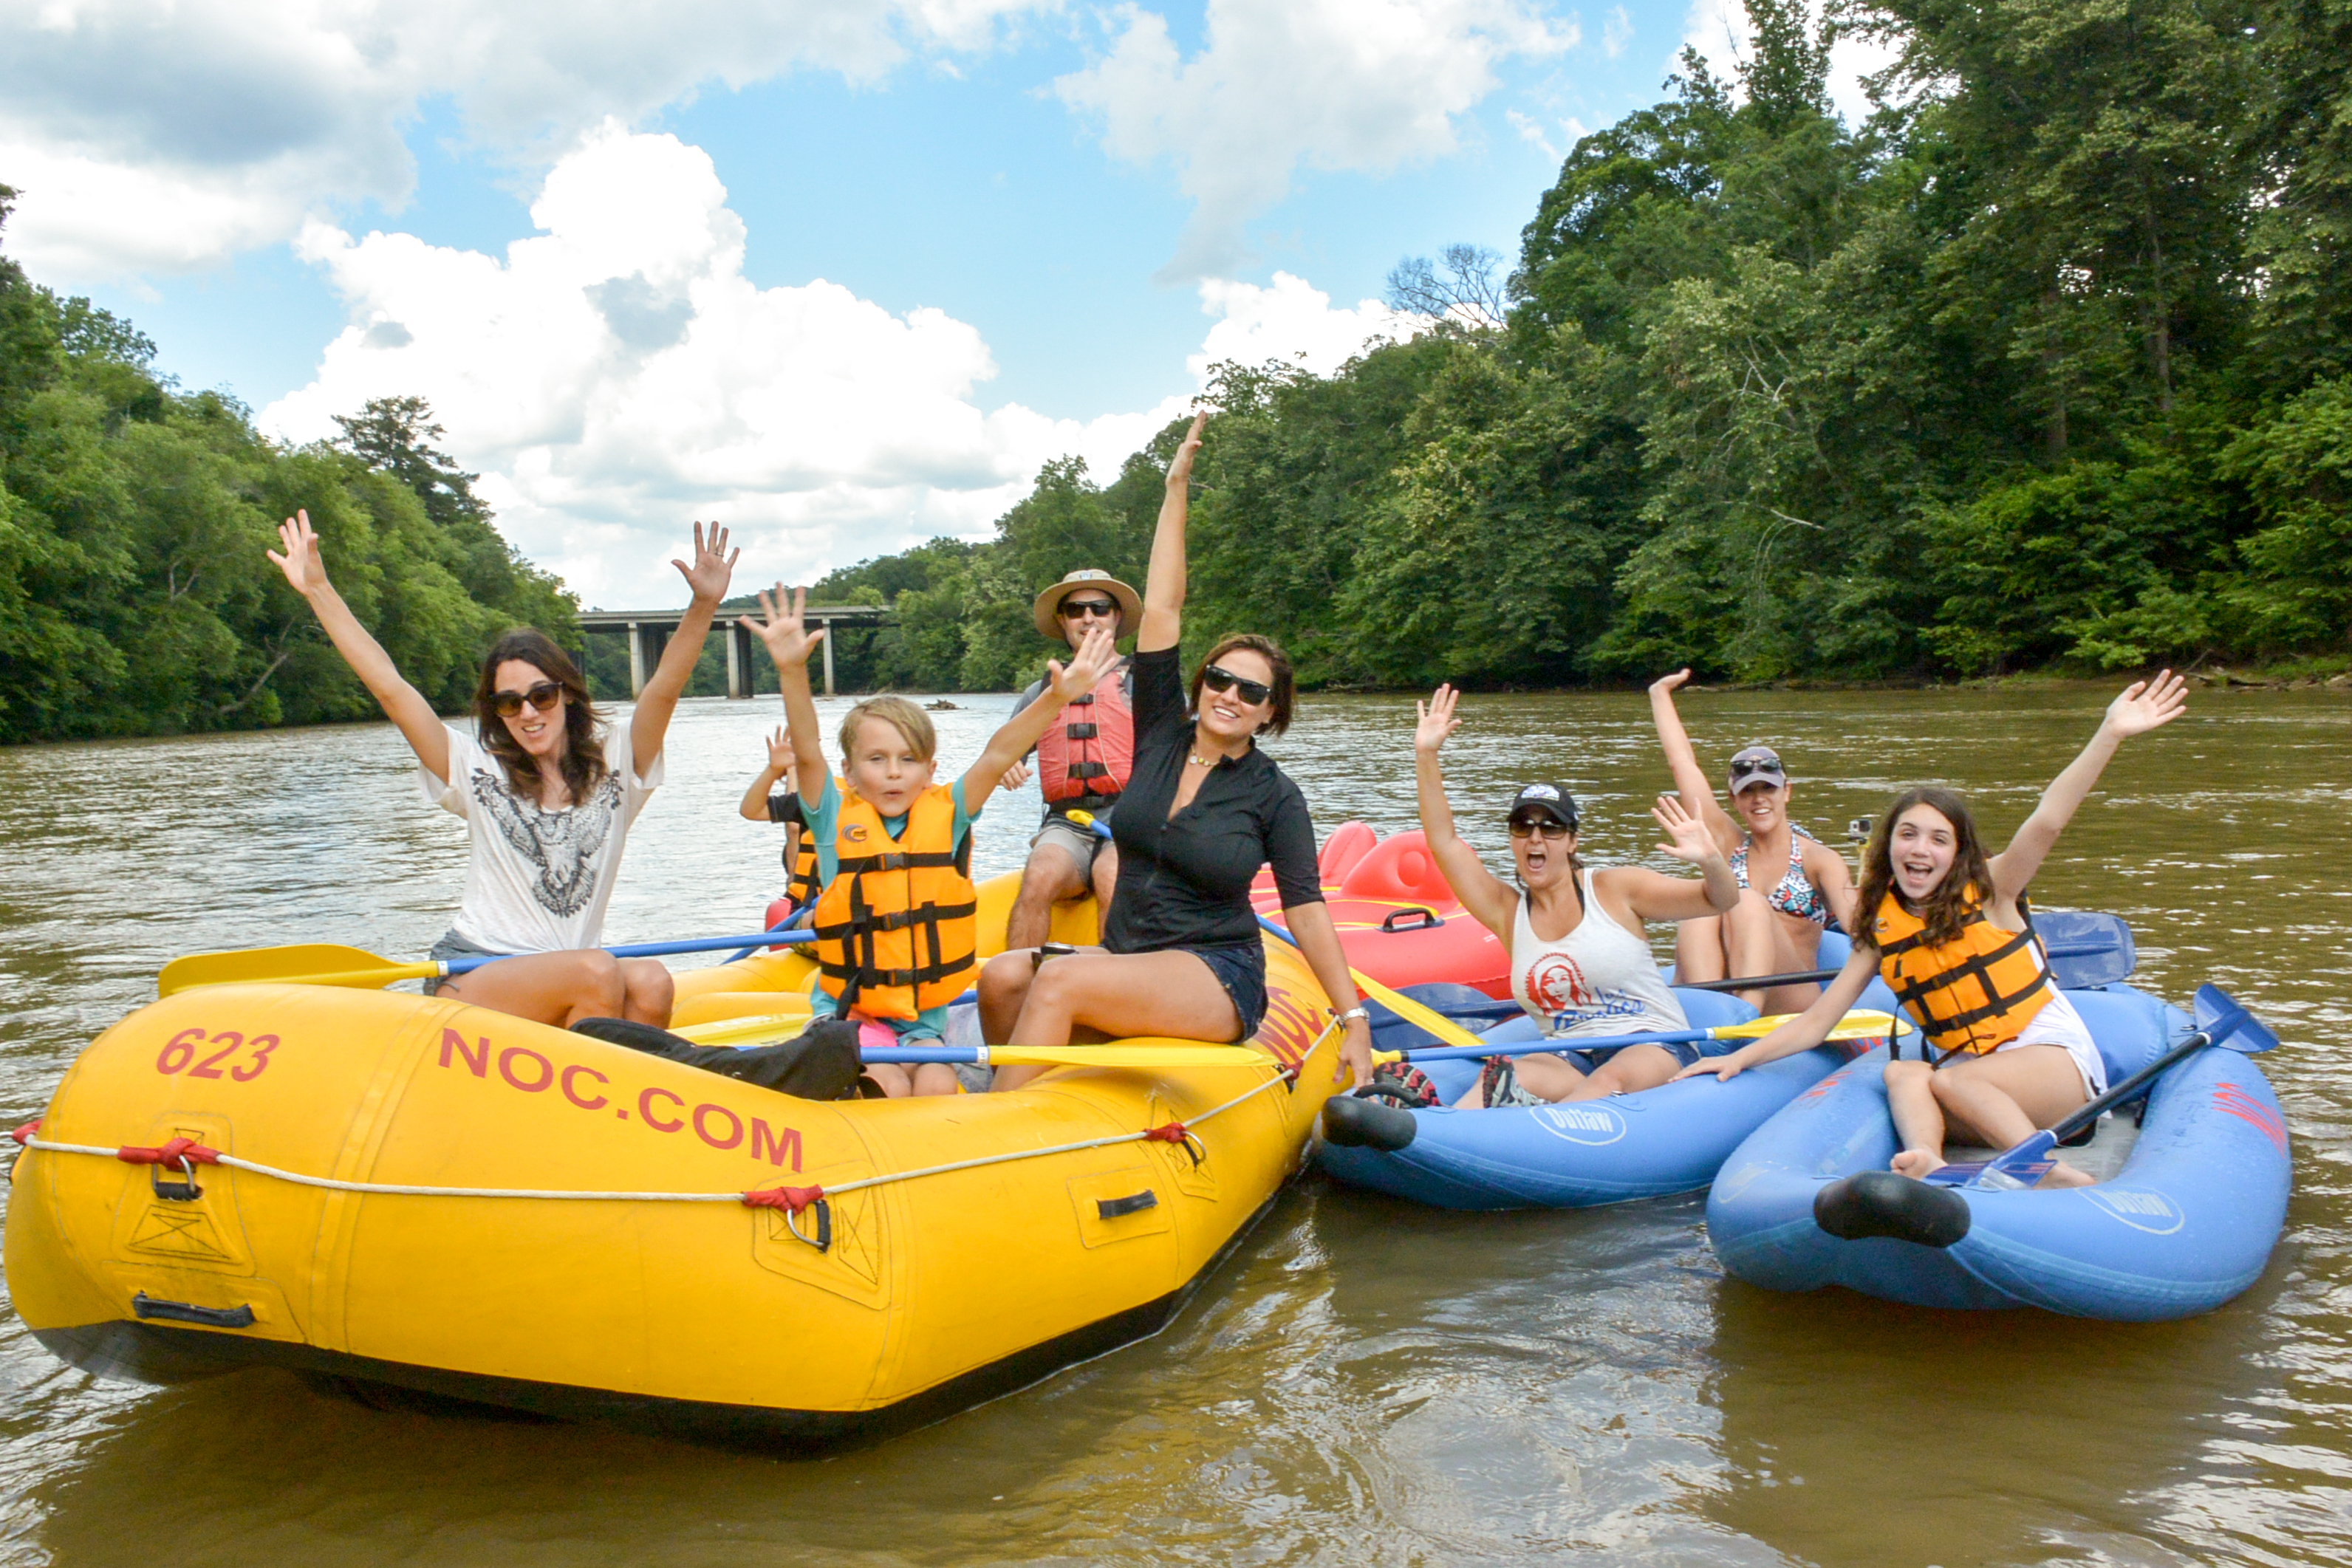 Nantahala Outdoor Center (NOC) - Chattahoochee River